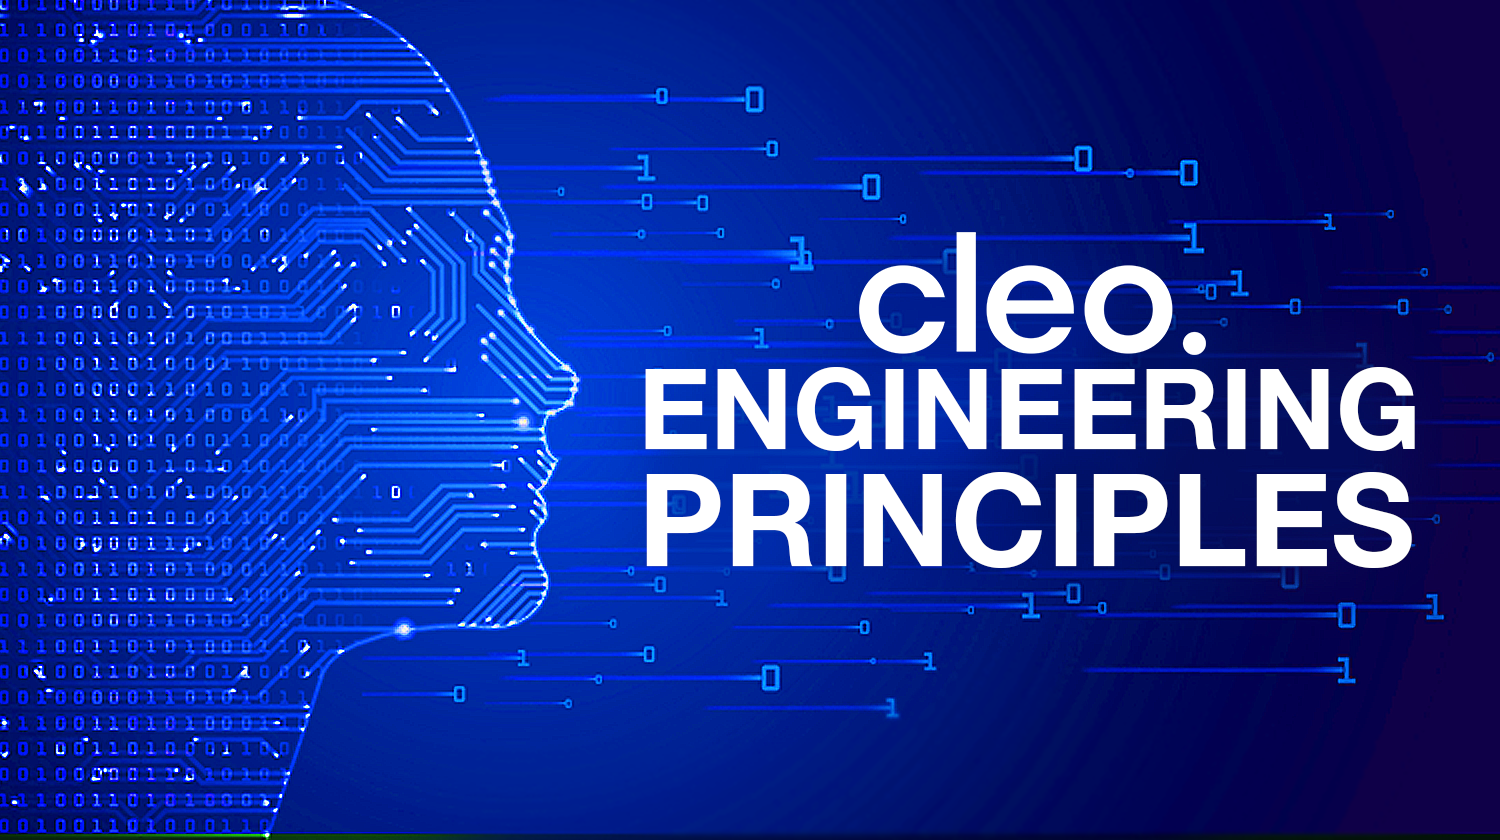 Cleo Engineering Principles